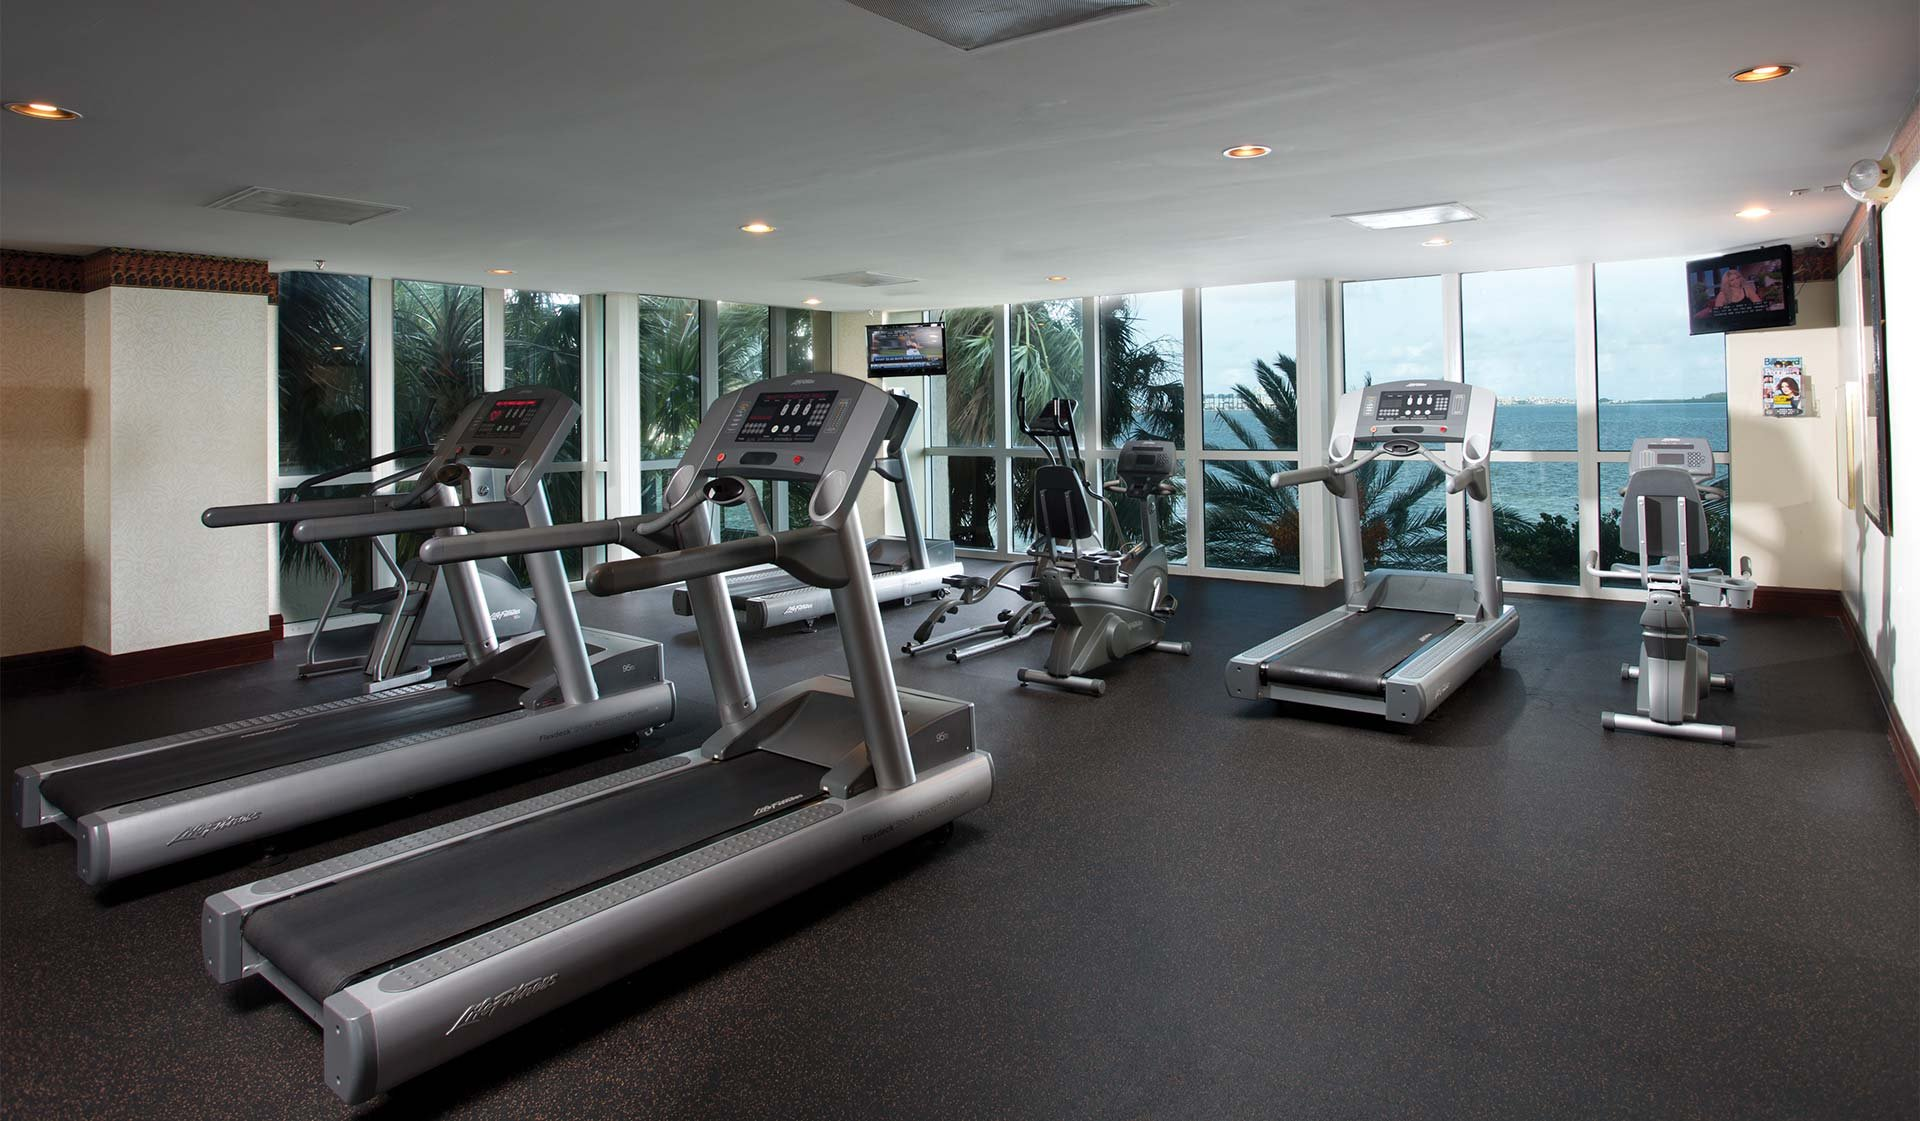 Yacht club at brickell apartments miami fl featured